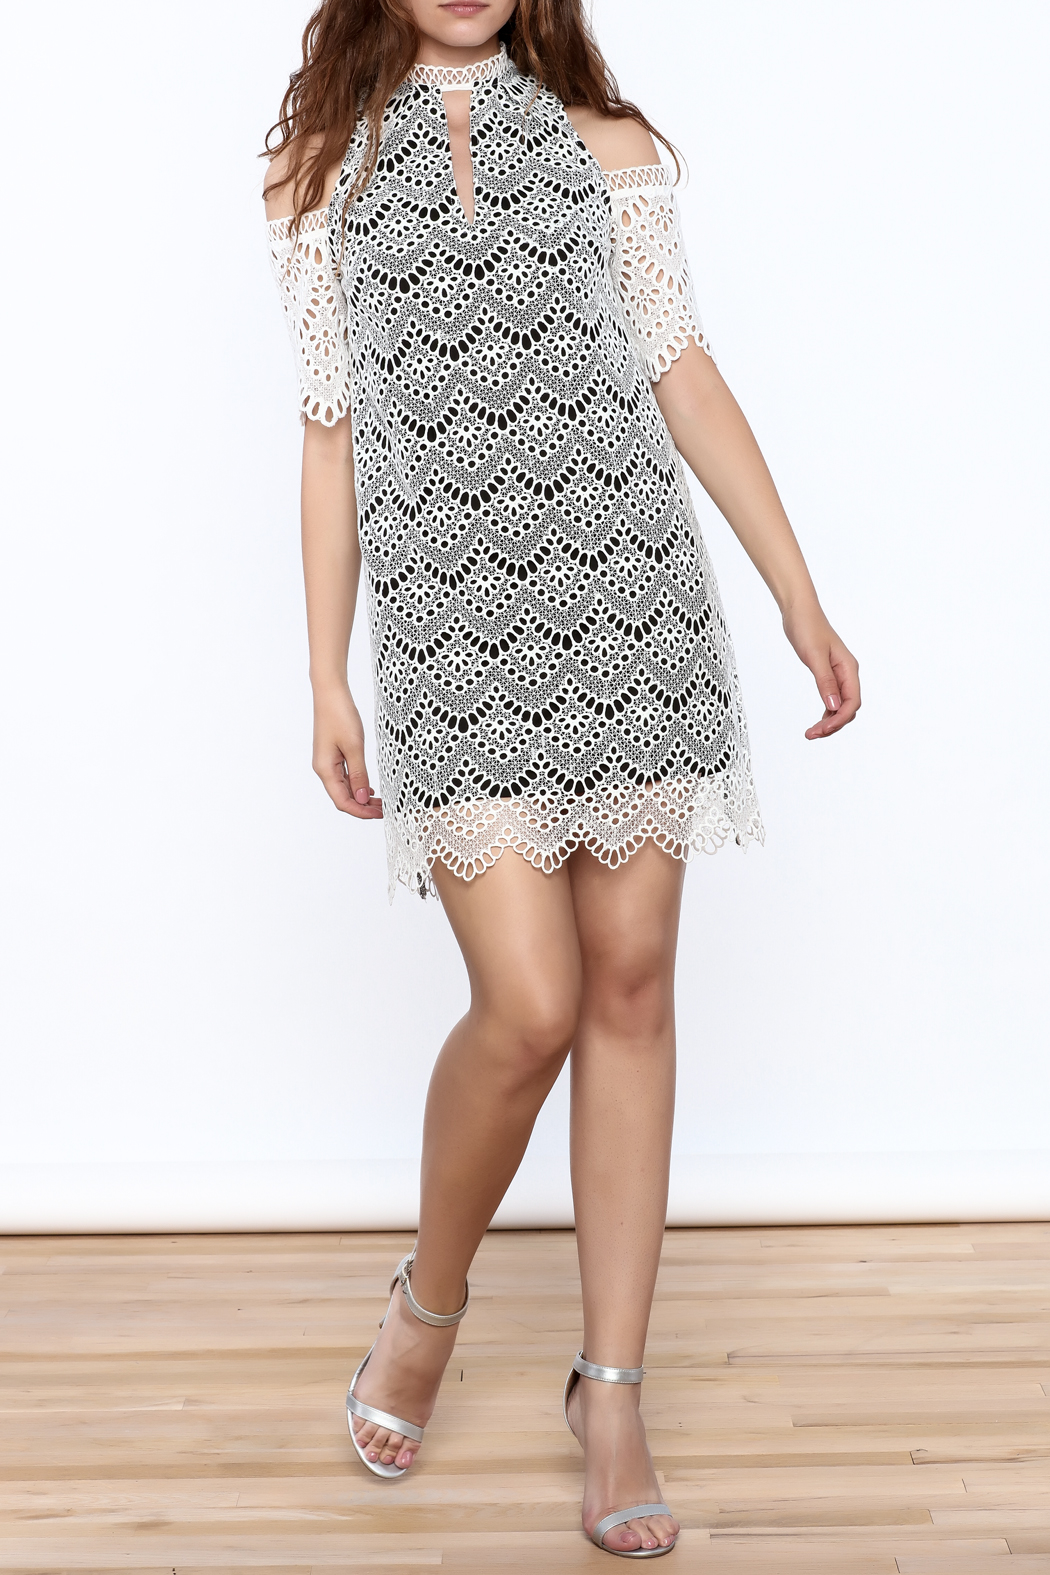 KAS New York Semi Lined Lace Dress - Front Full Image